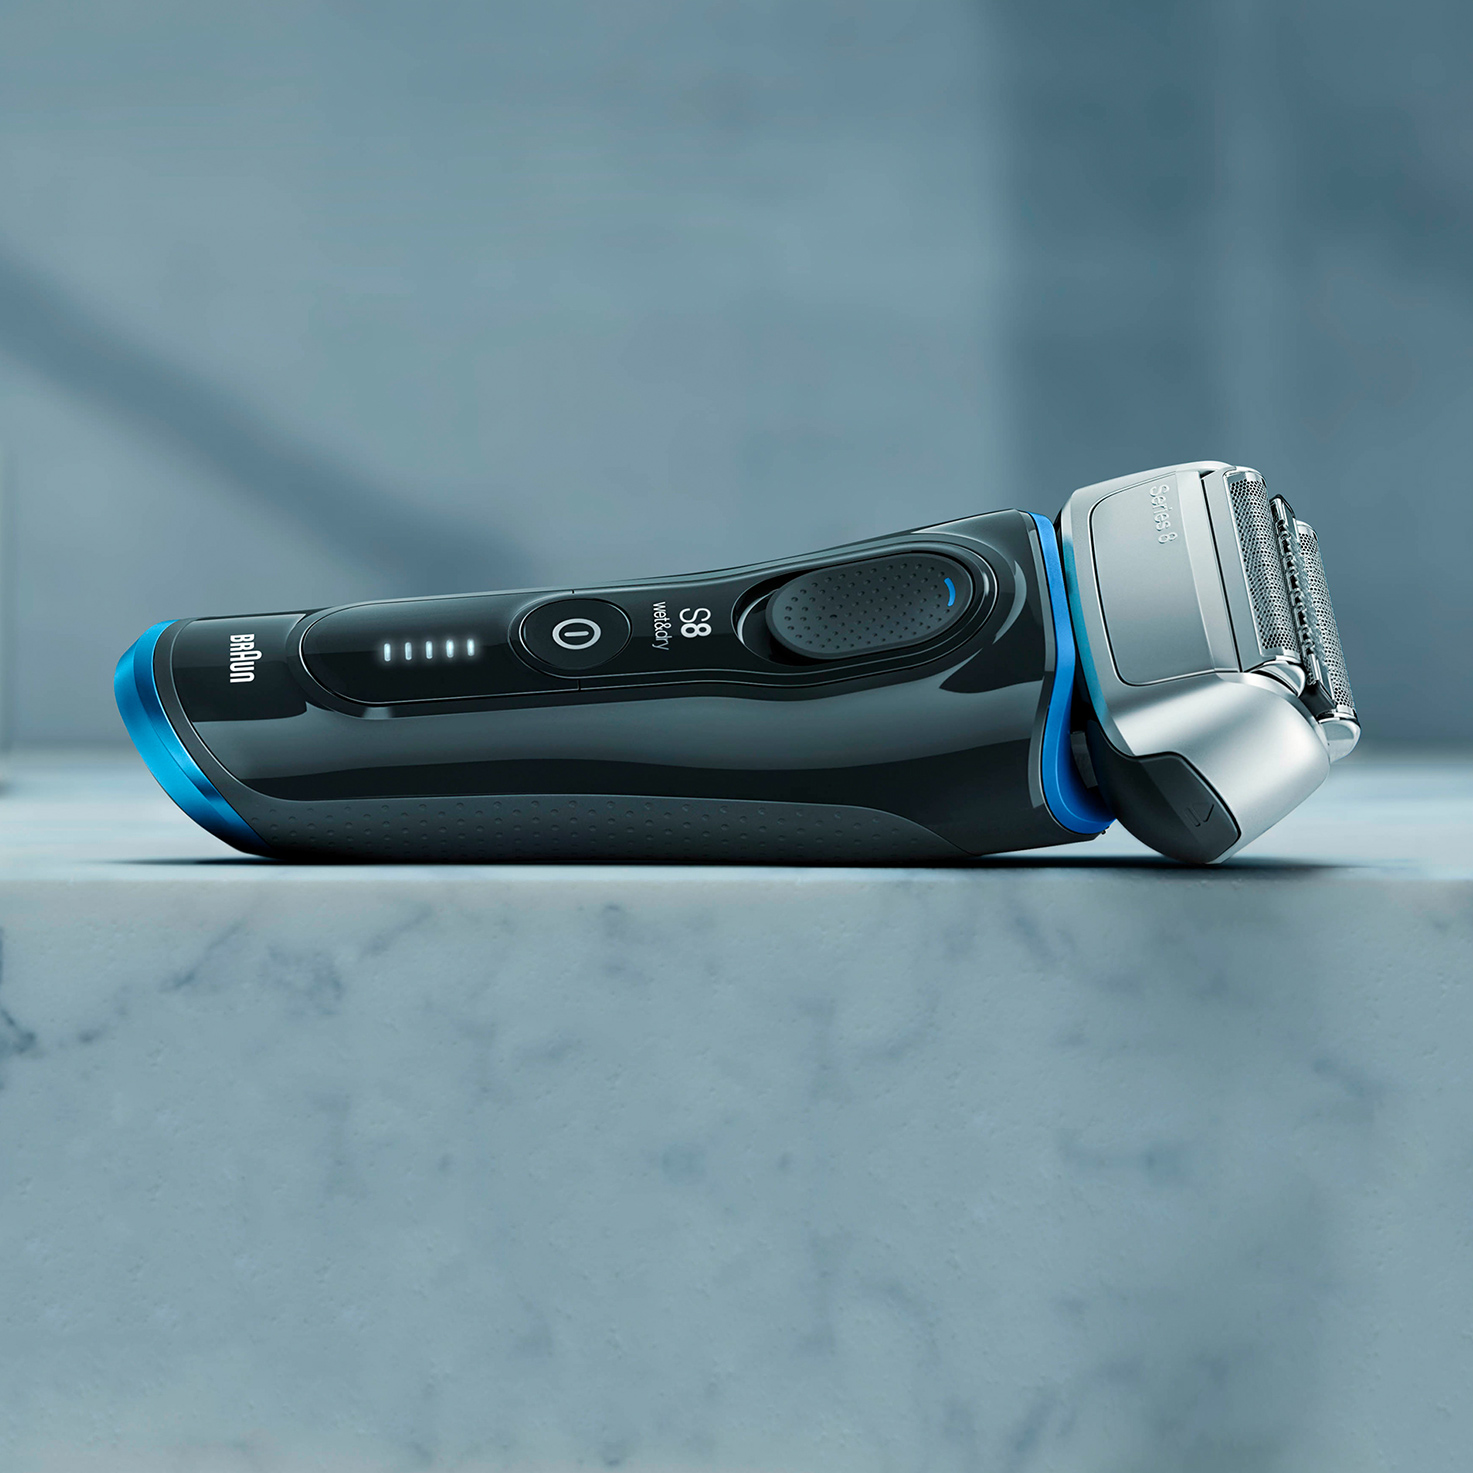 Series 8 8391s shaver